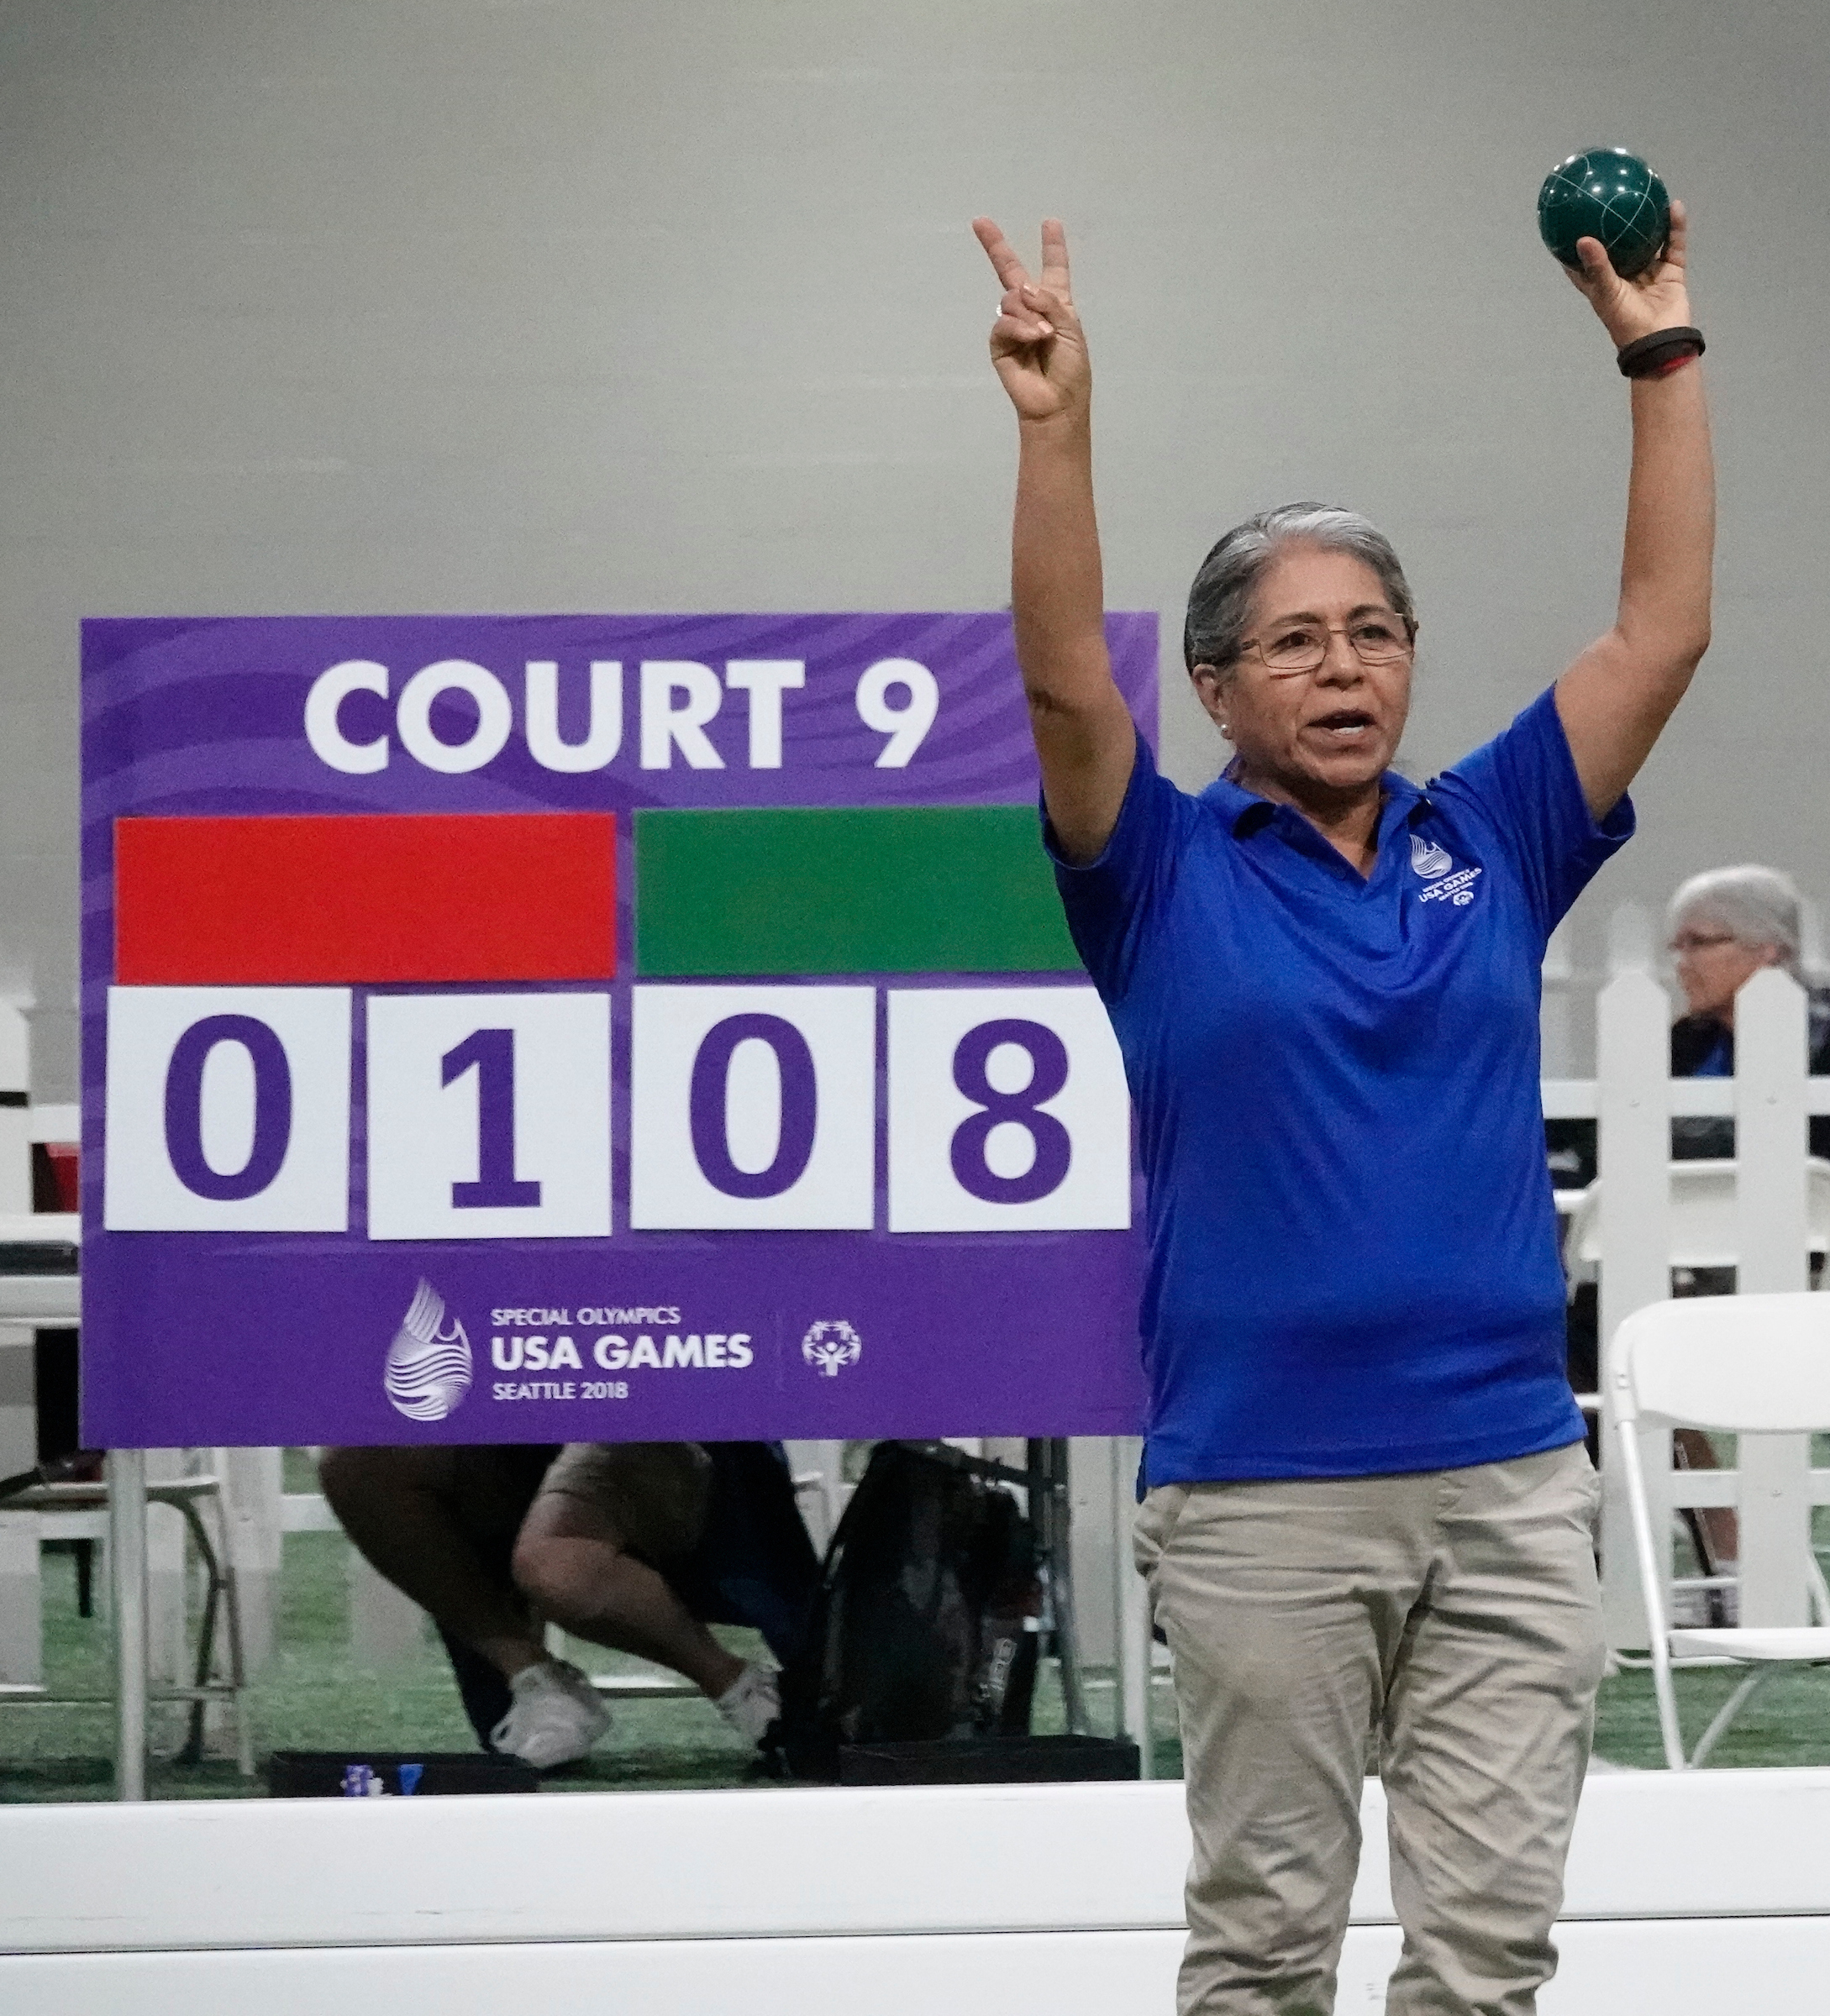 7/4/2018 Bocce Ball , (9AM-11AM) , Special Olympics USA Games, Seattle Wa.